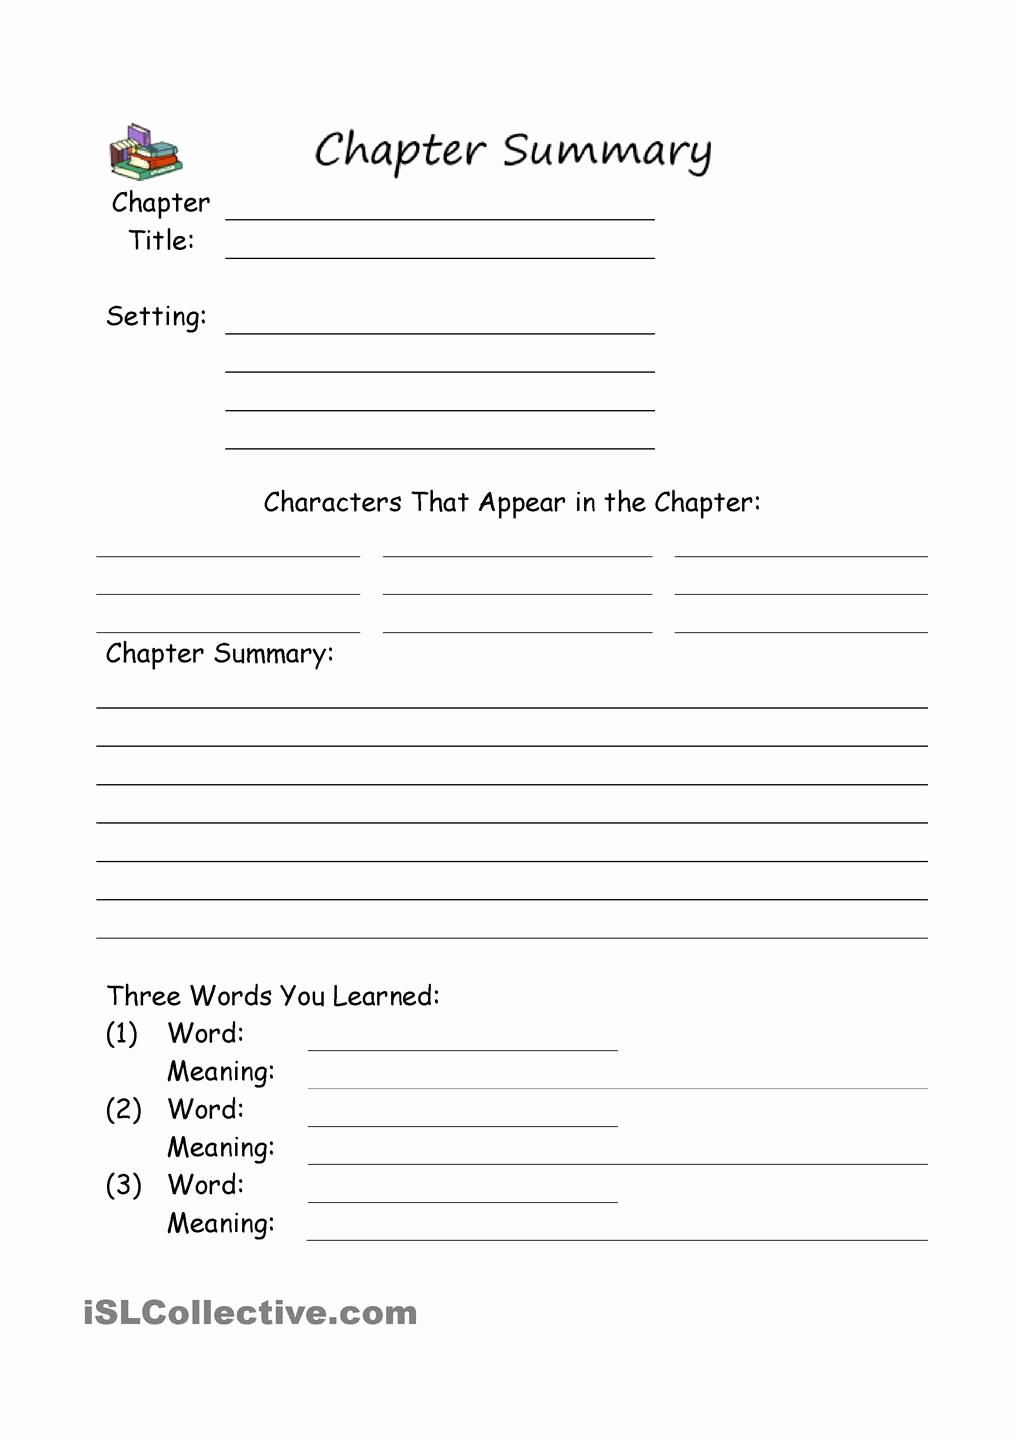 Summary Worksheets Middle School Beautiful 20 Summary Worksheets Middle School